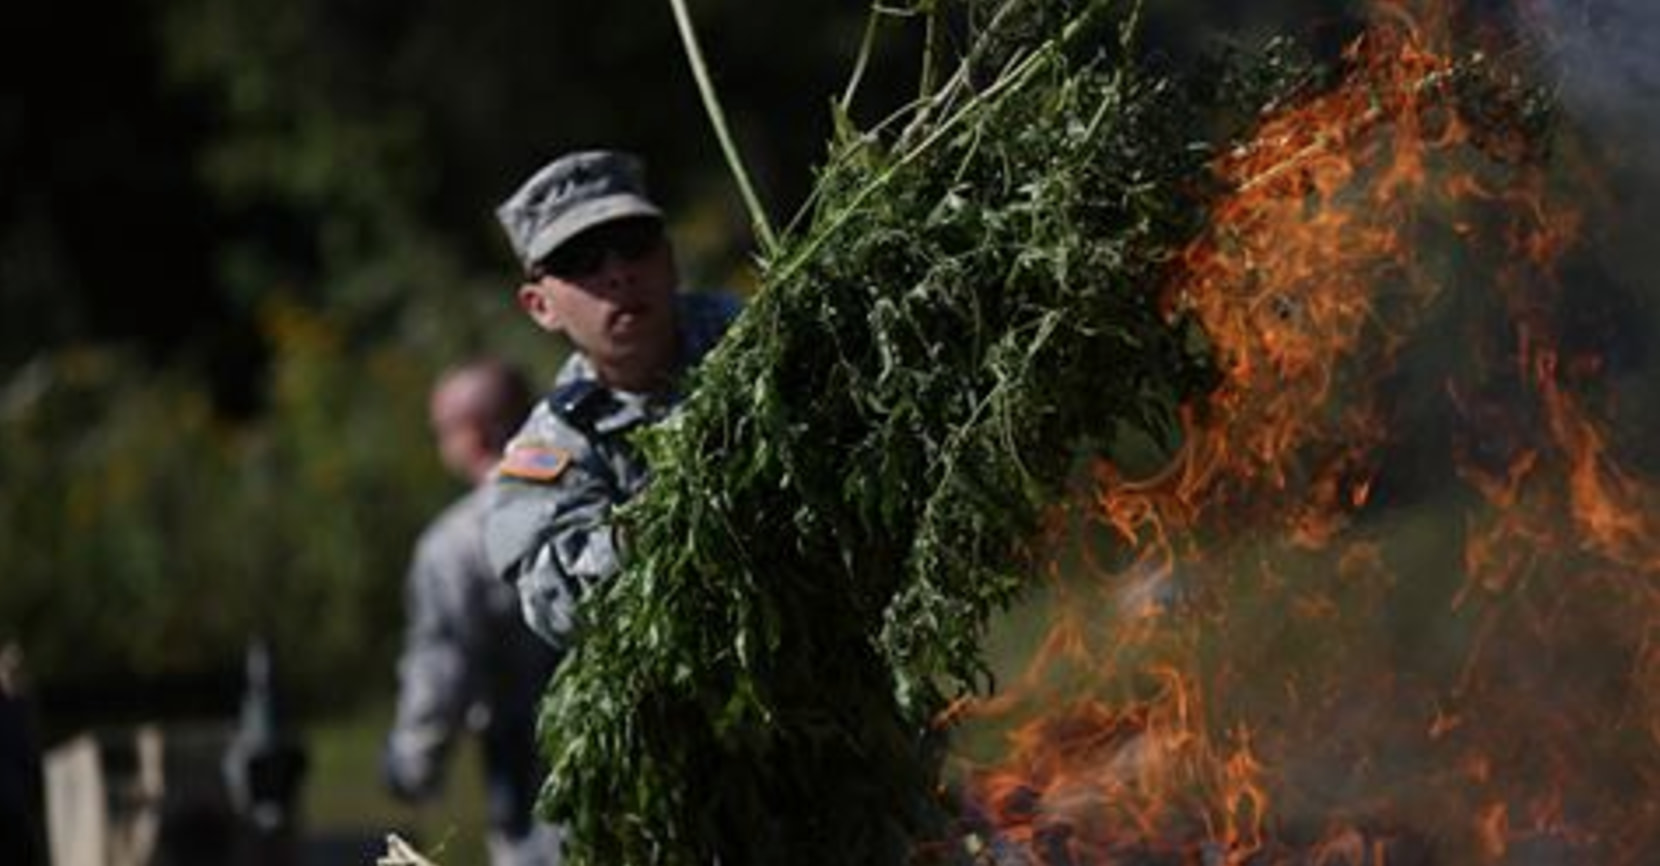 the reasons why marijuana is illegal As marijuana legalization gains popularity with voters, lawmakers are running out  of excuses here are top 10 reasons marijuana is still illegal.